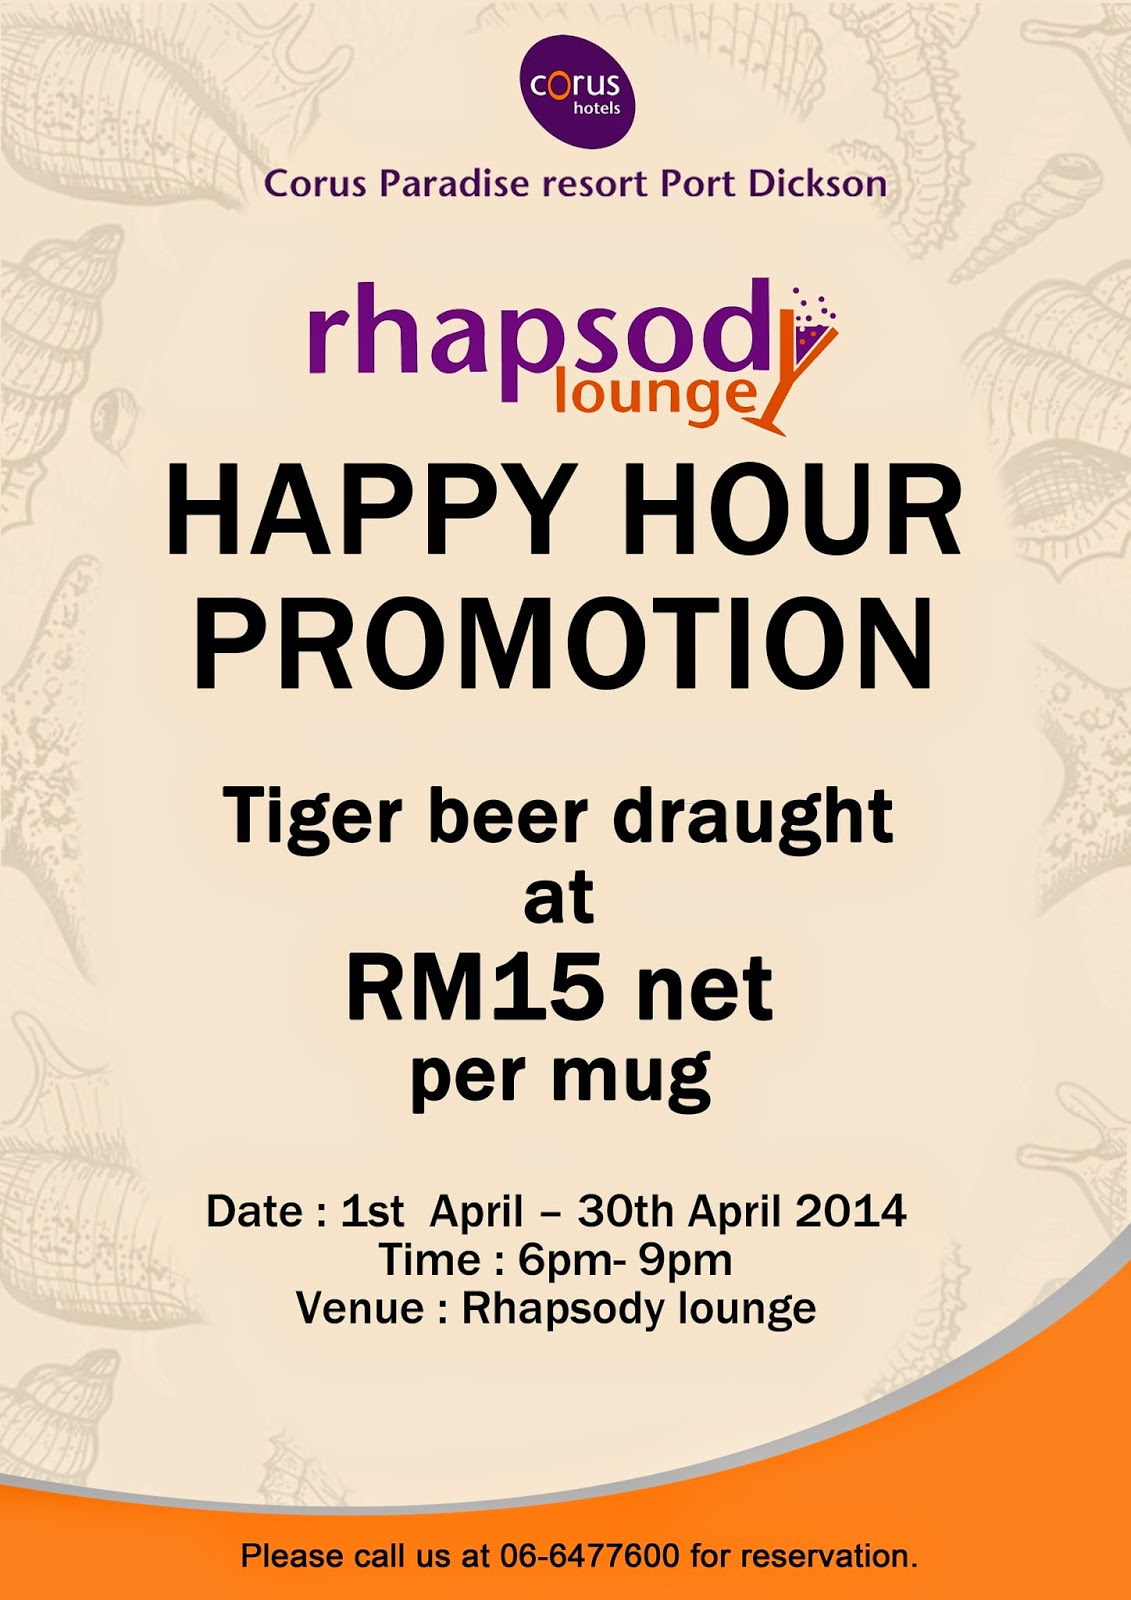 HAPPY HOUR PROMOTION AT RHAPSODY LOUNGE, CORUS PORT DICKSON